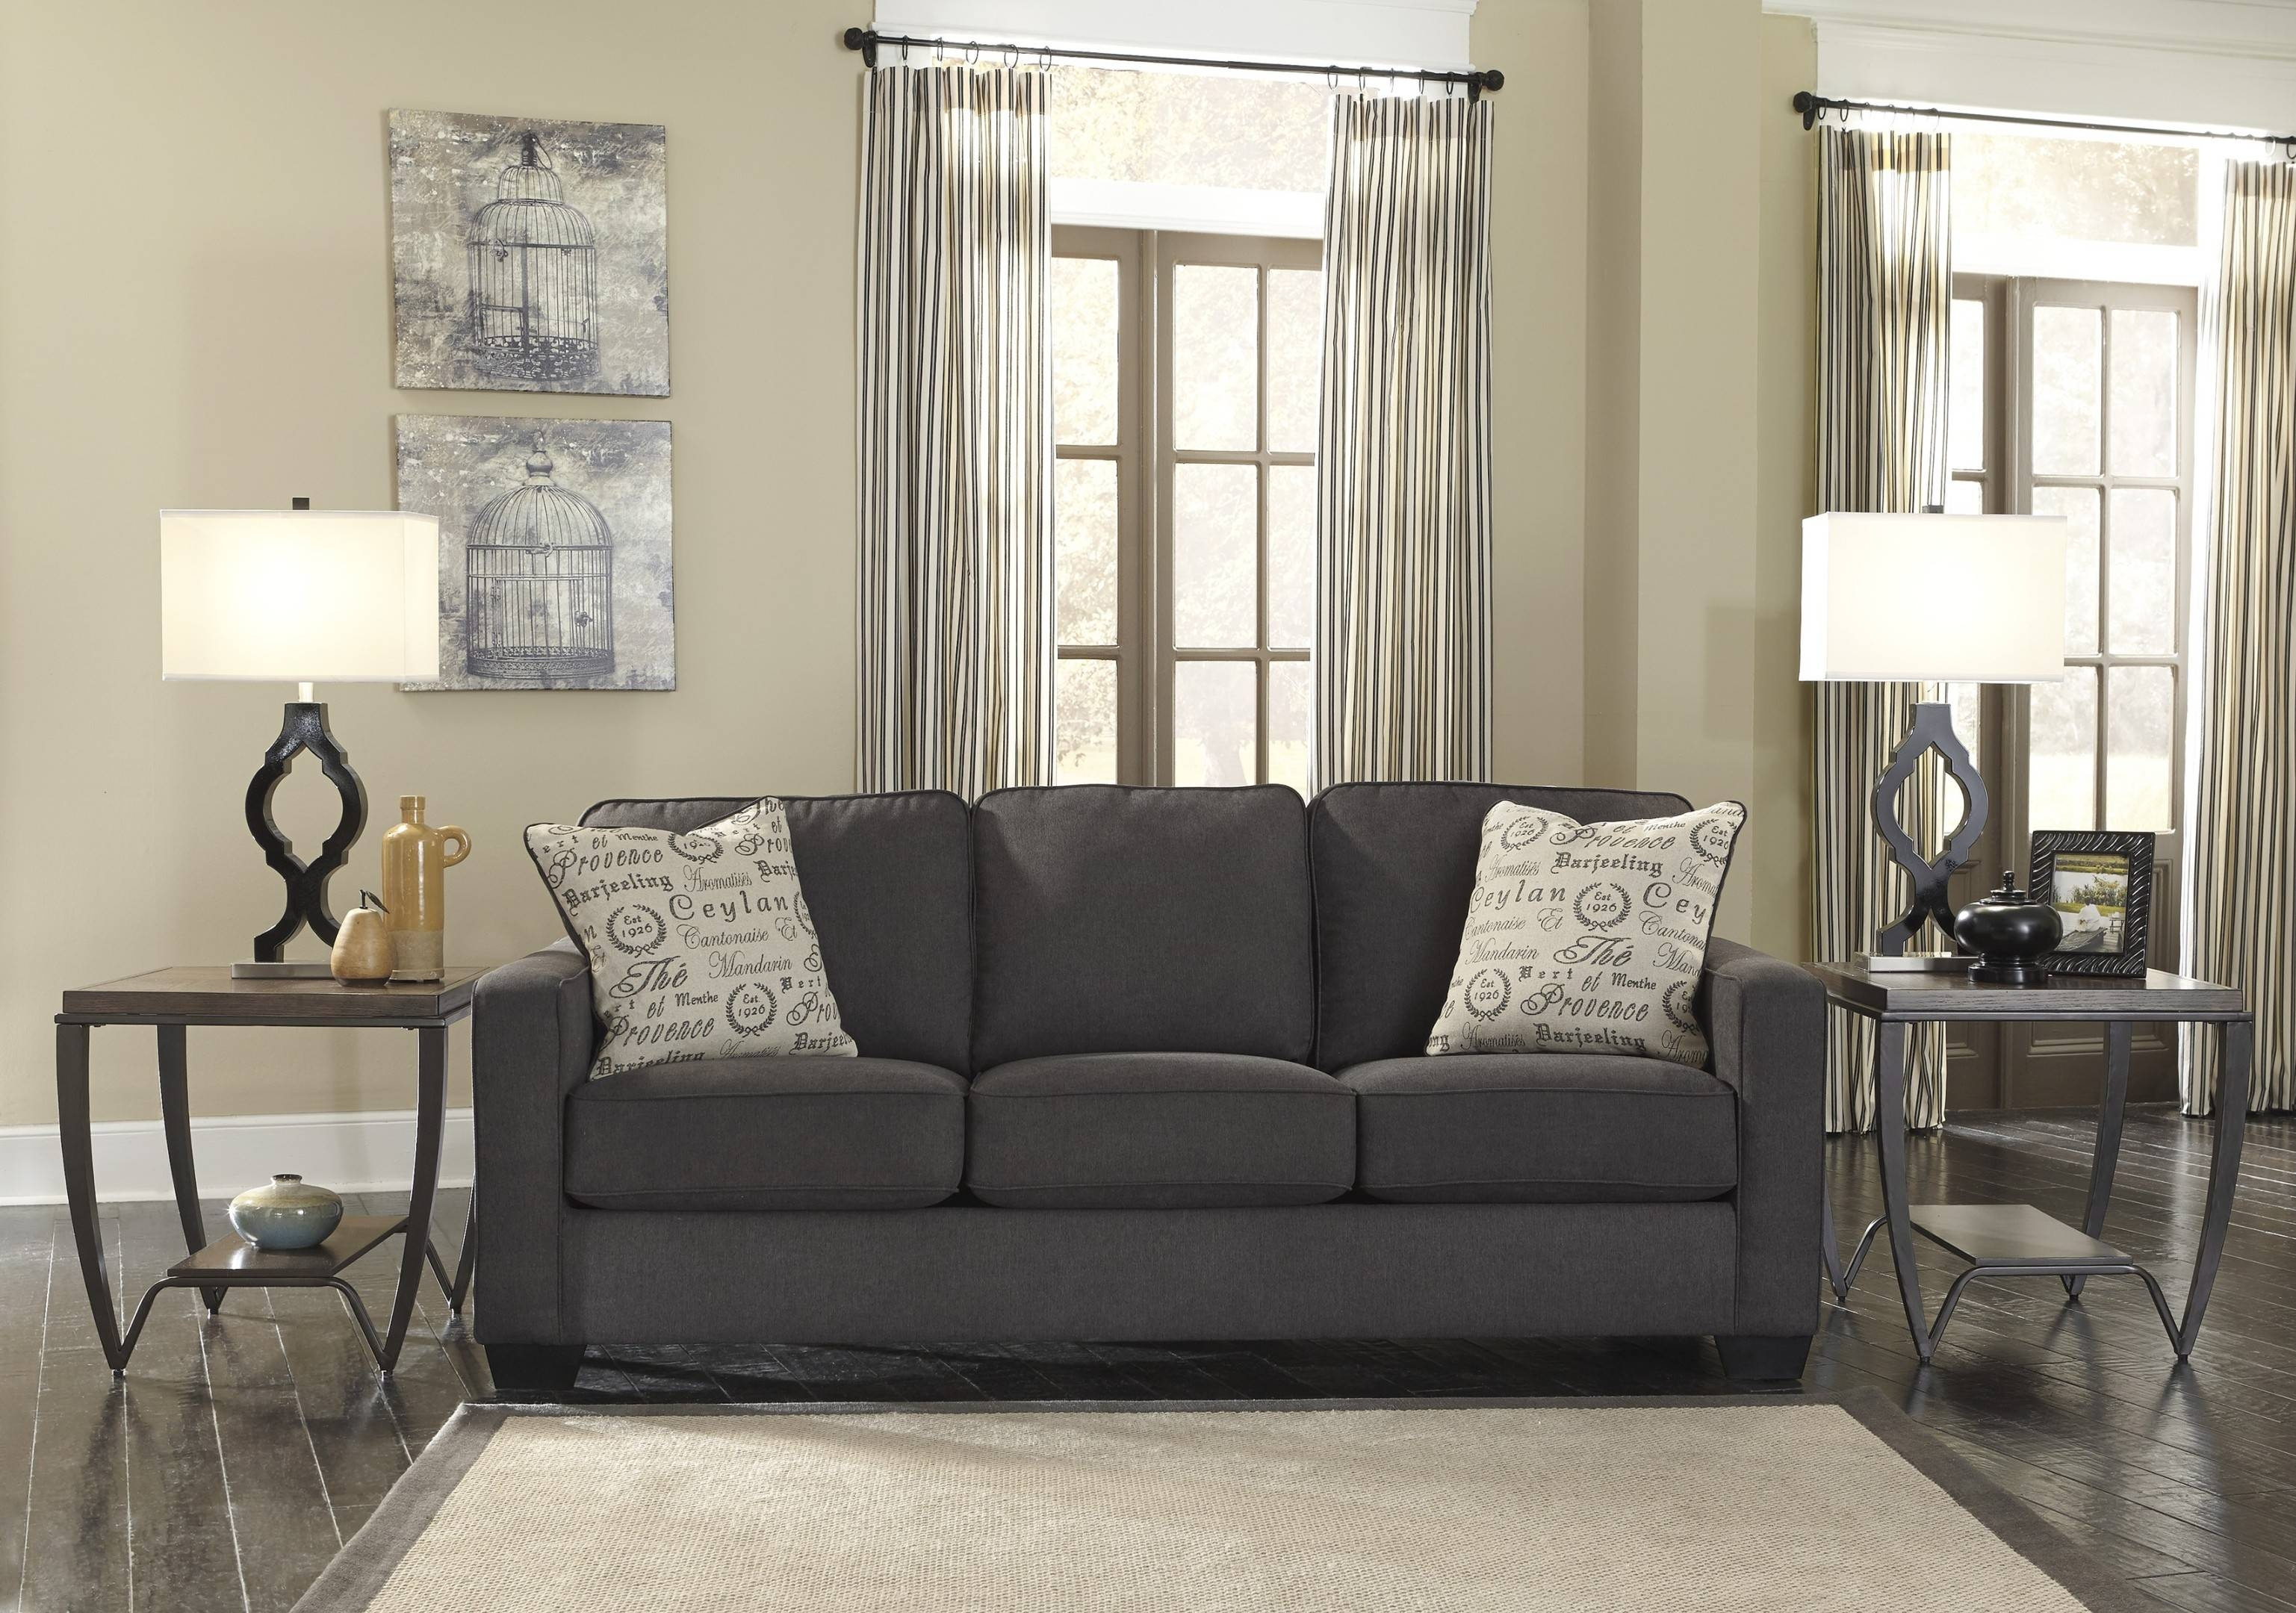 Dark Grey Sofa Living Room Ideas | Tehranmix Decoration intended for Charcoal Grey Sofas (Image 10 of 30)